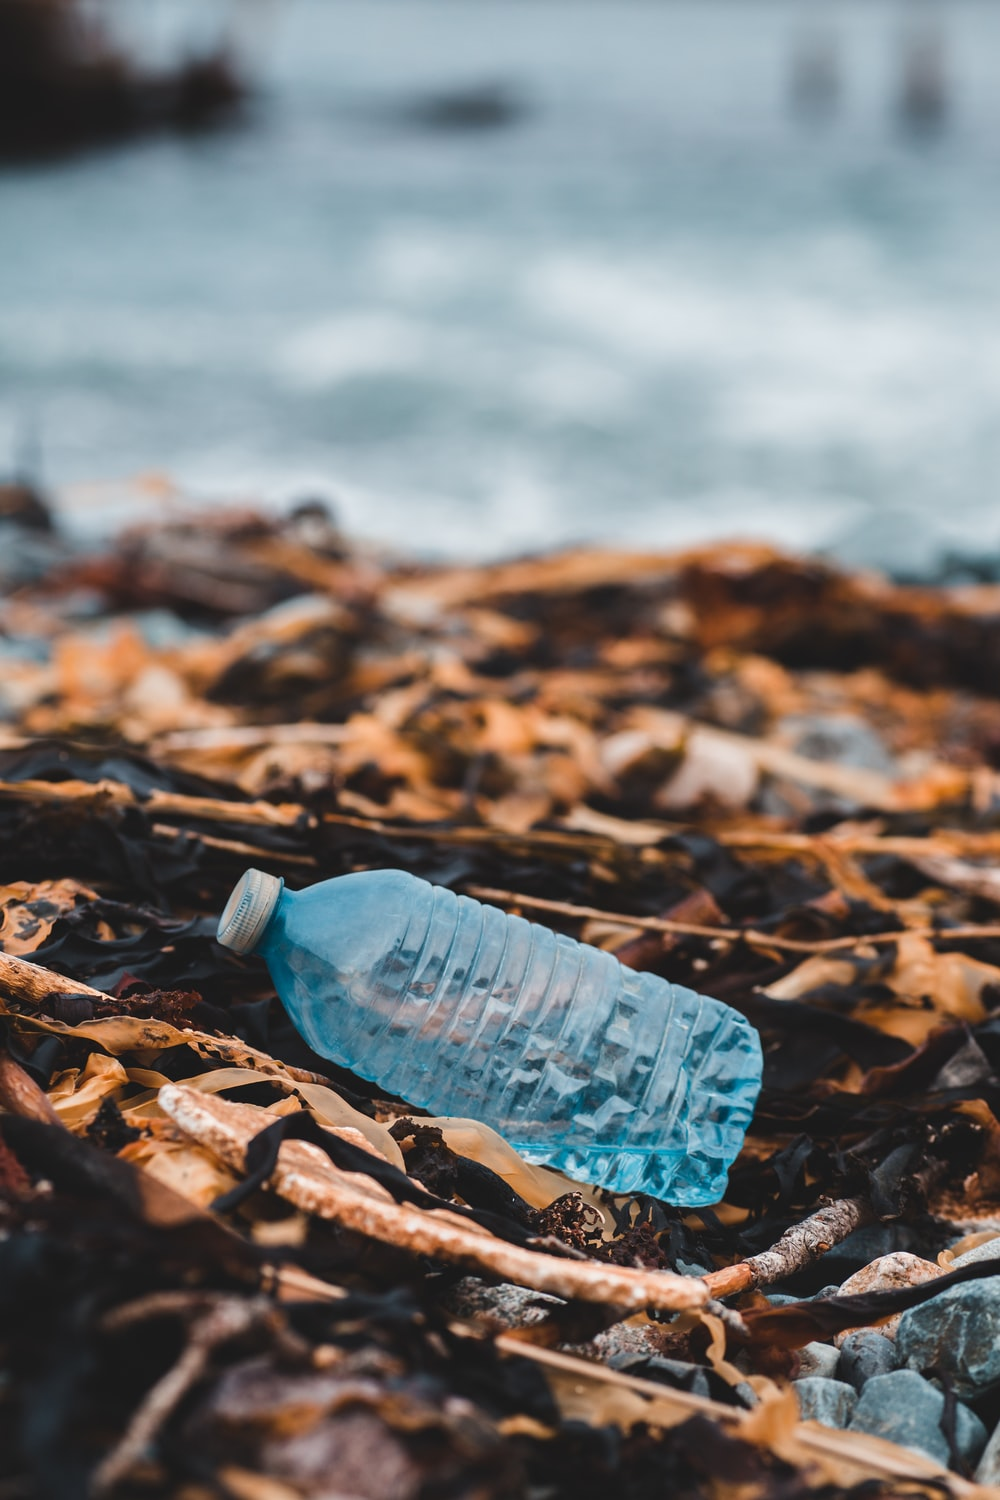 blue plastic bottle on brown dried leaves